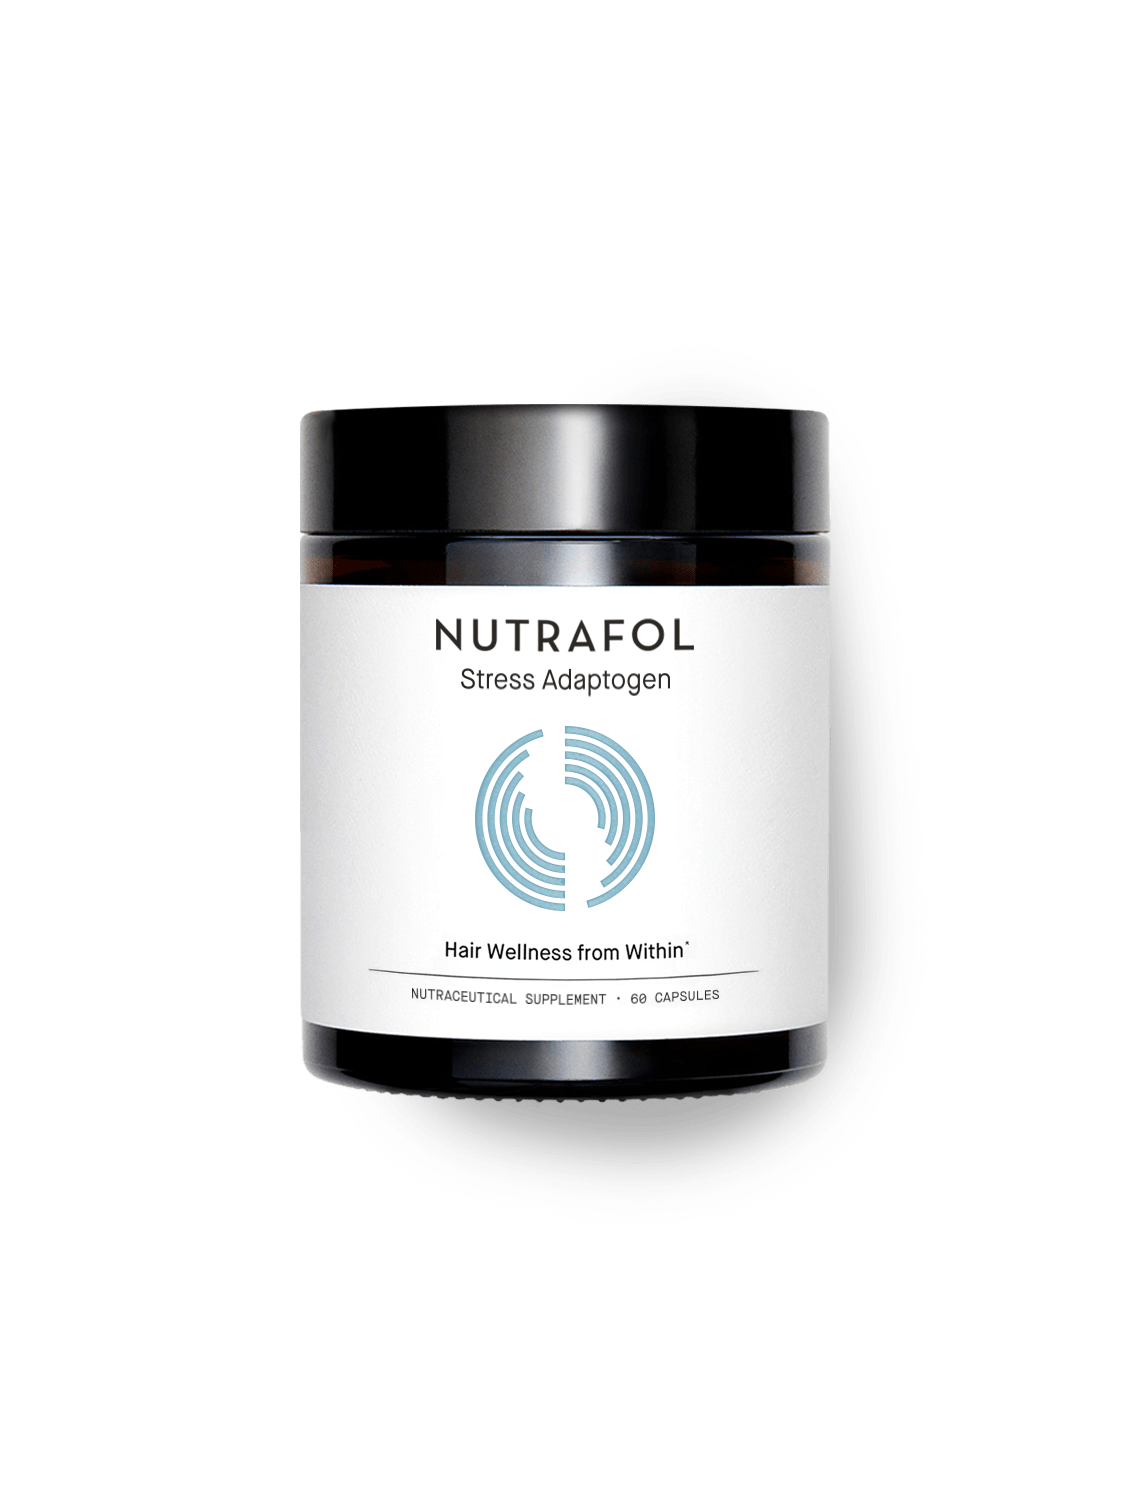 image descriptionNutrafol- Stress Adaptogen